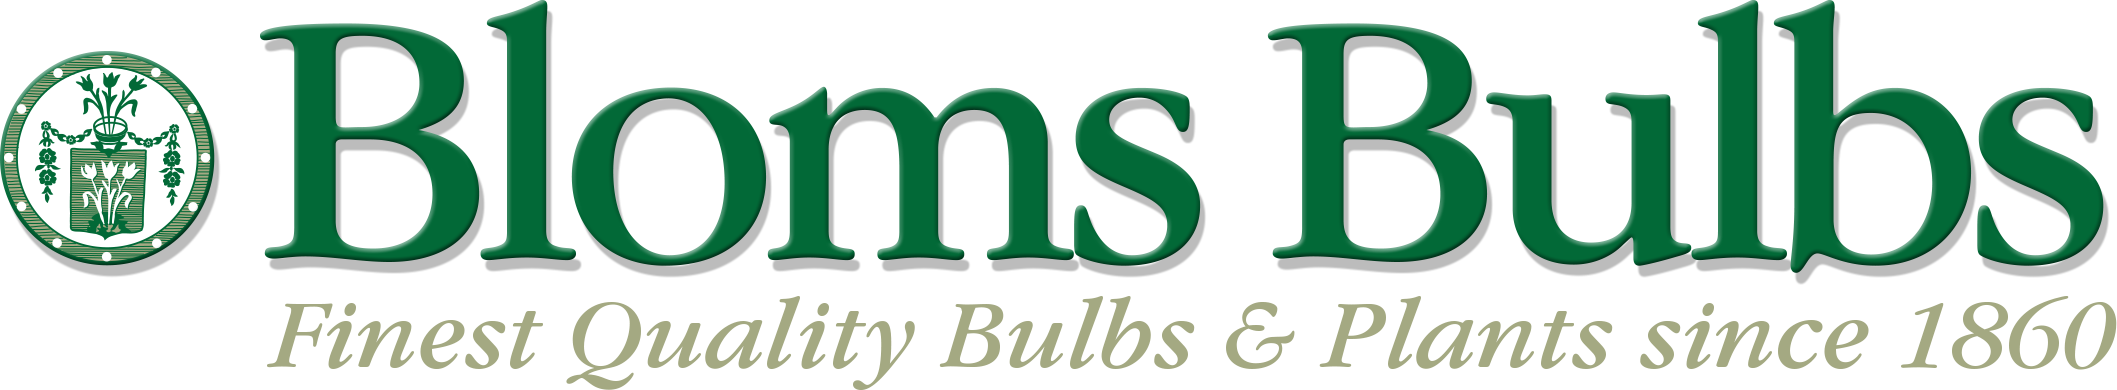 Bloms Bulbs